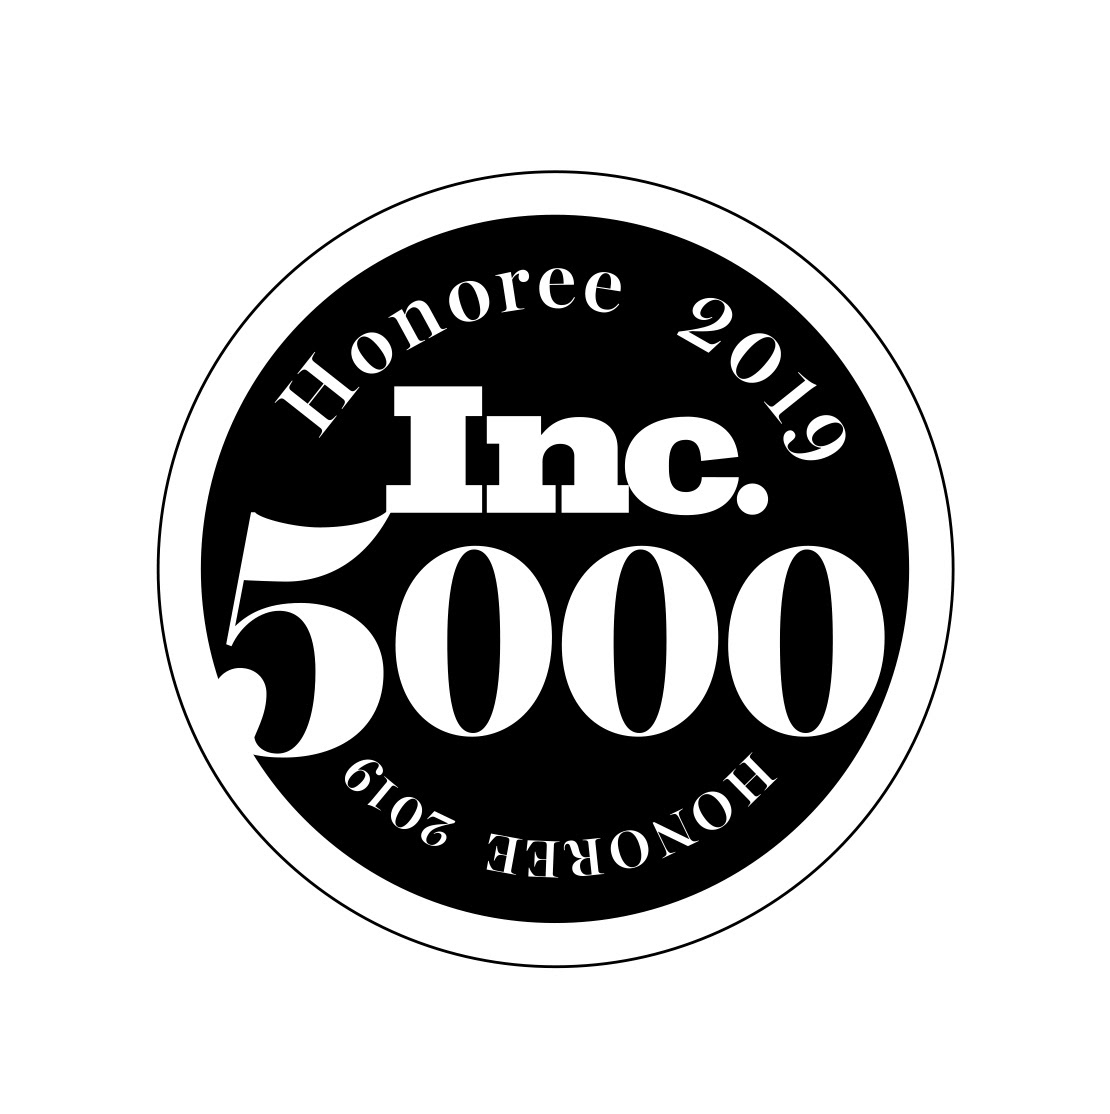 KW Property Management & Consulting Honored as one of America's Fastest-Growing Private Companies in Inc. Magazine's Annual Inc. 5000 List